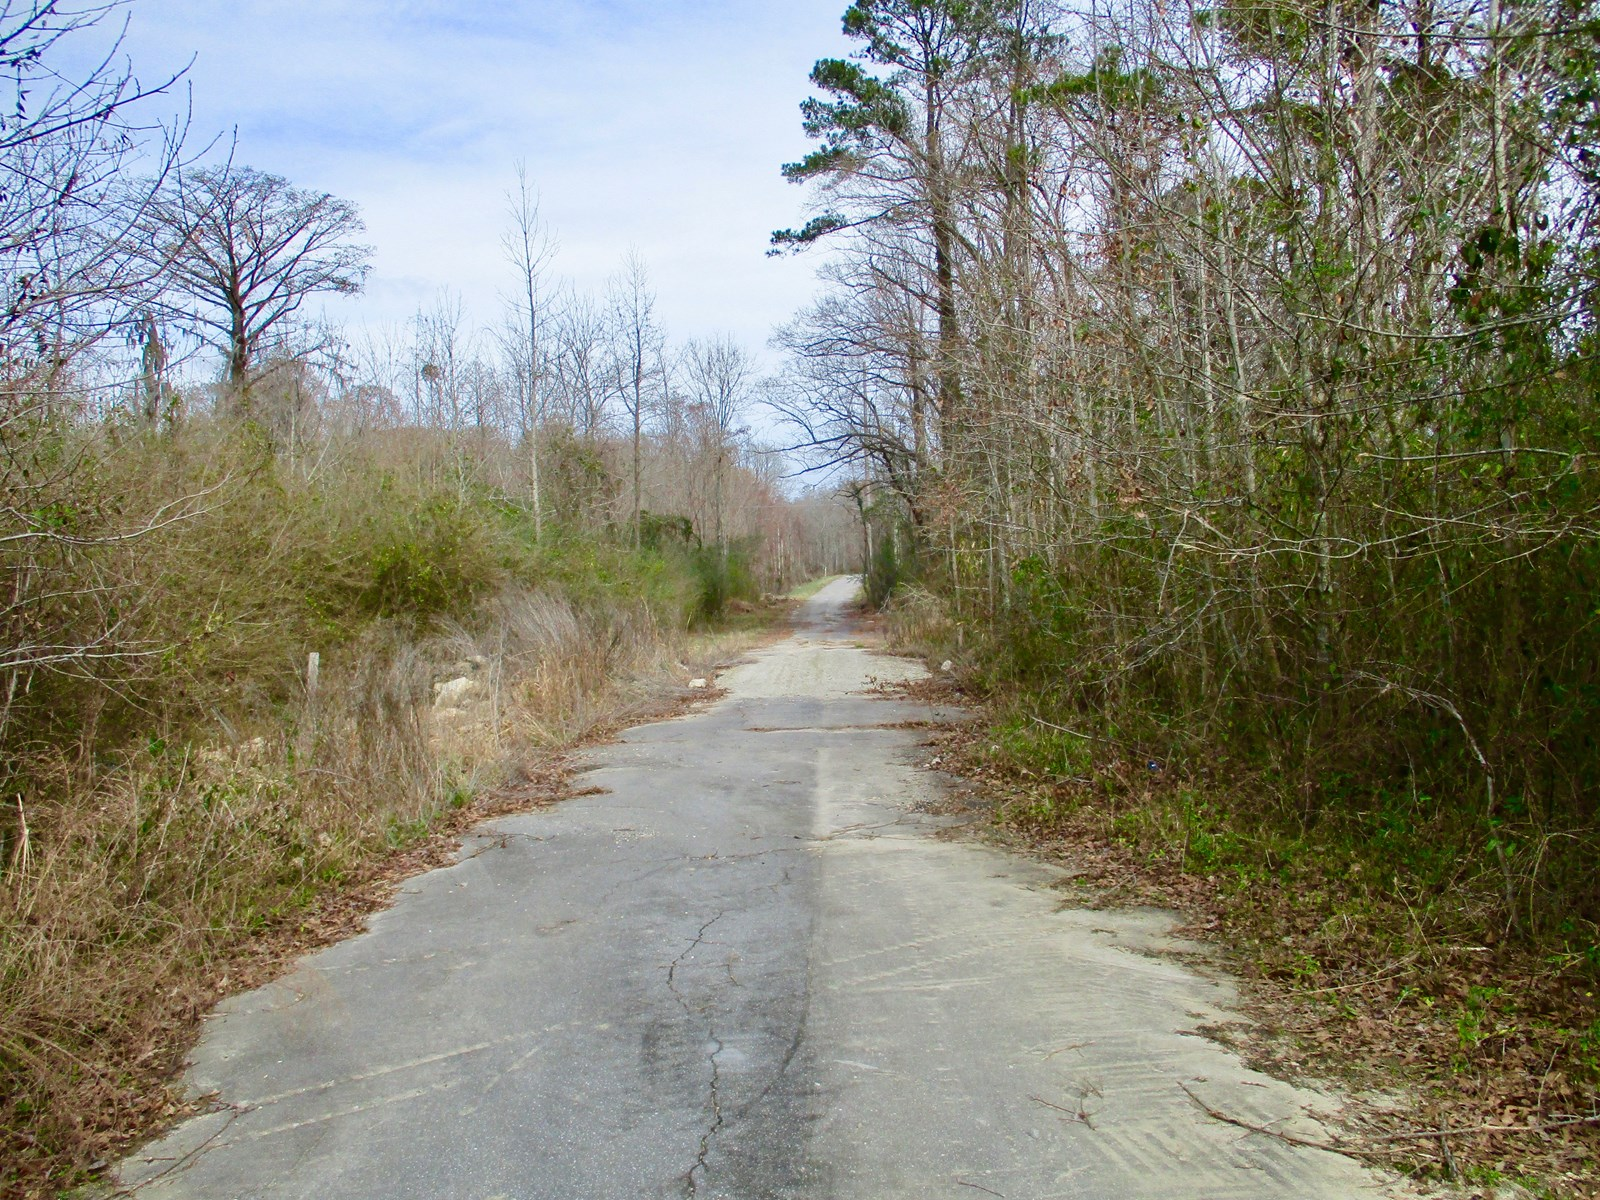 Land for Sale in Beaufort County, NC